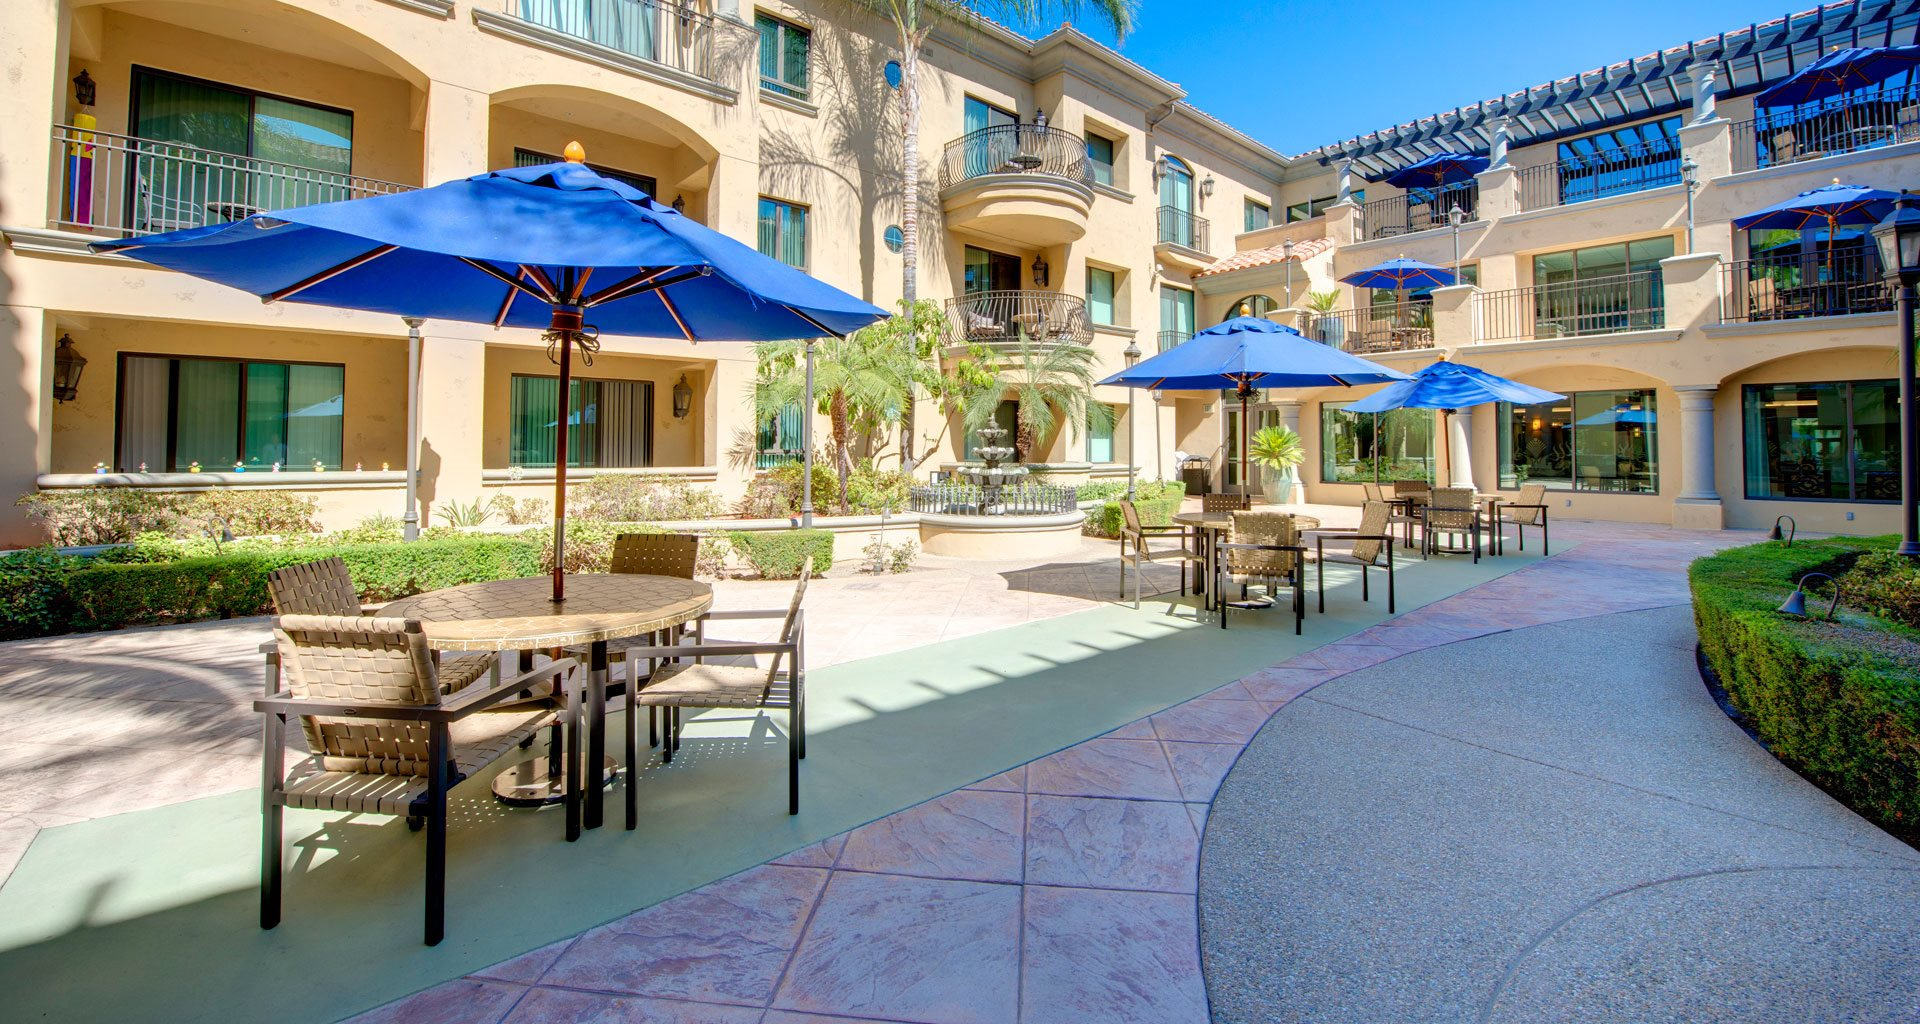 Shaded Outdoor Courtyard Area at Pacifica Senior Living Hillsborough, Chino, CA, 91710